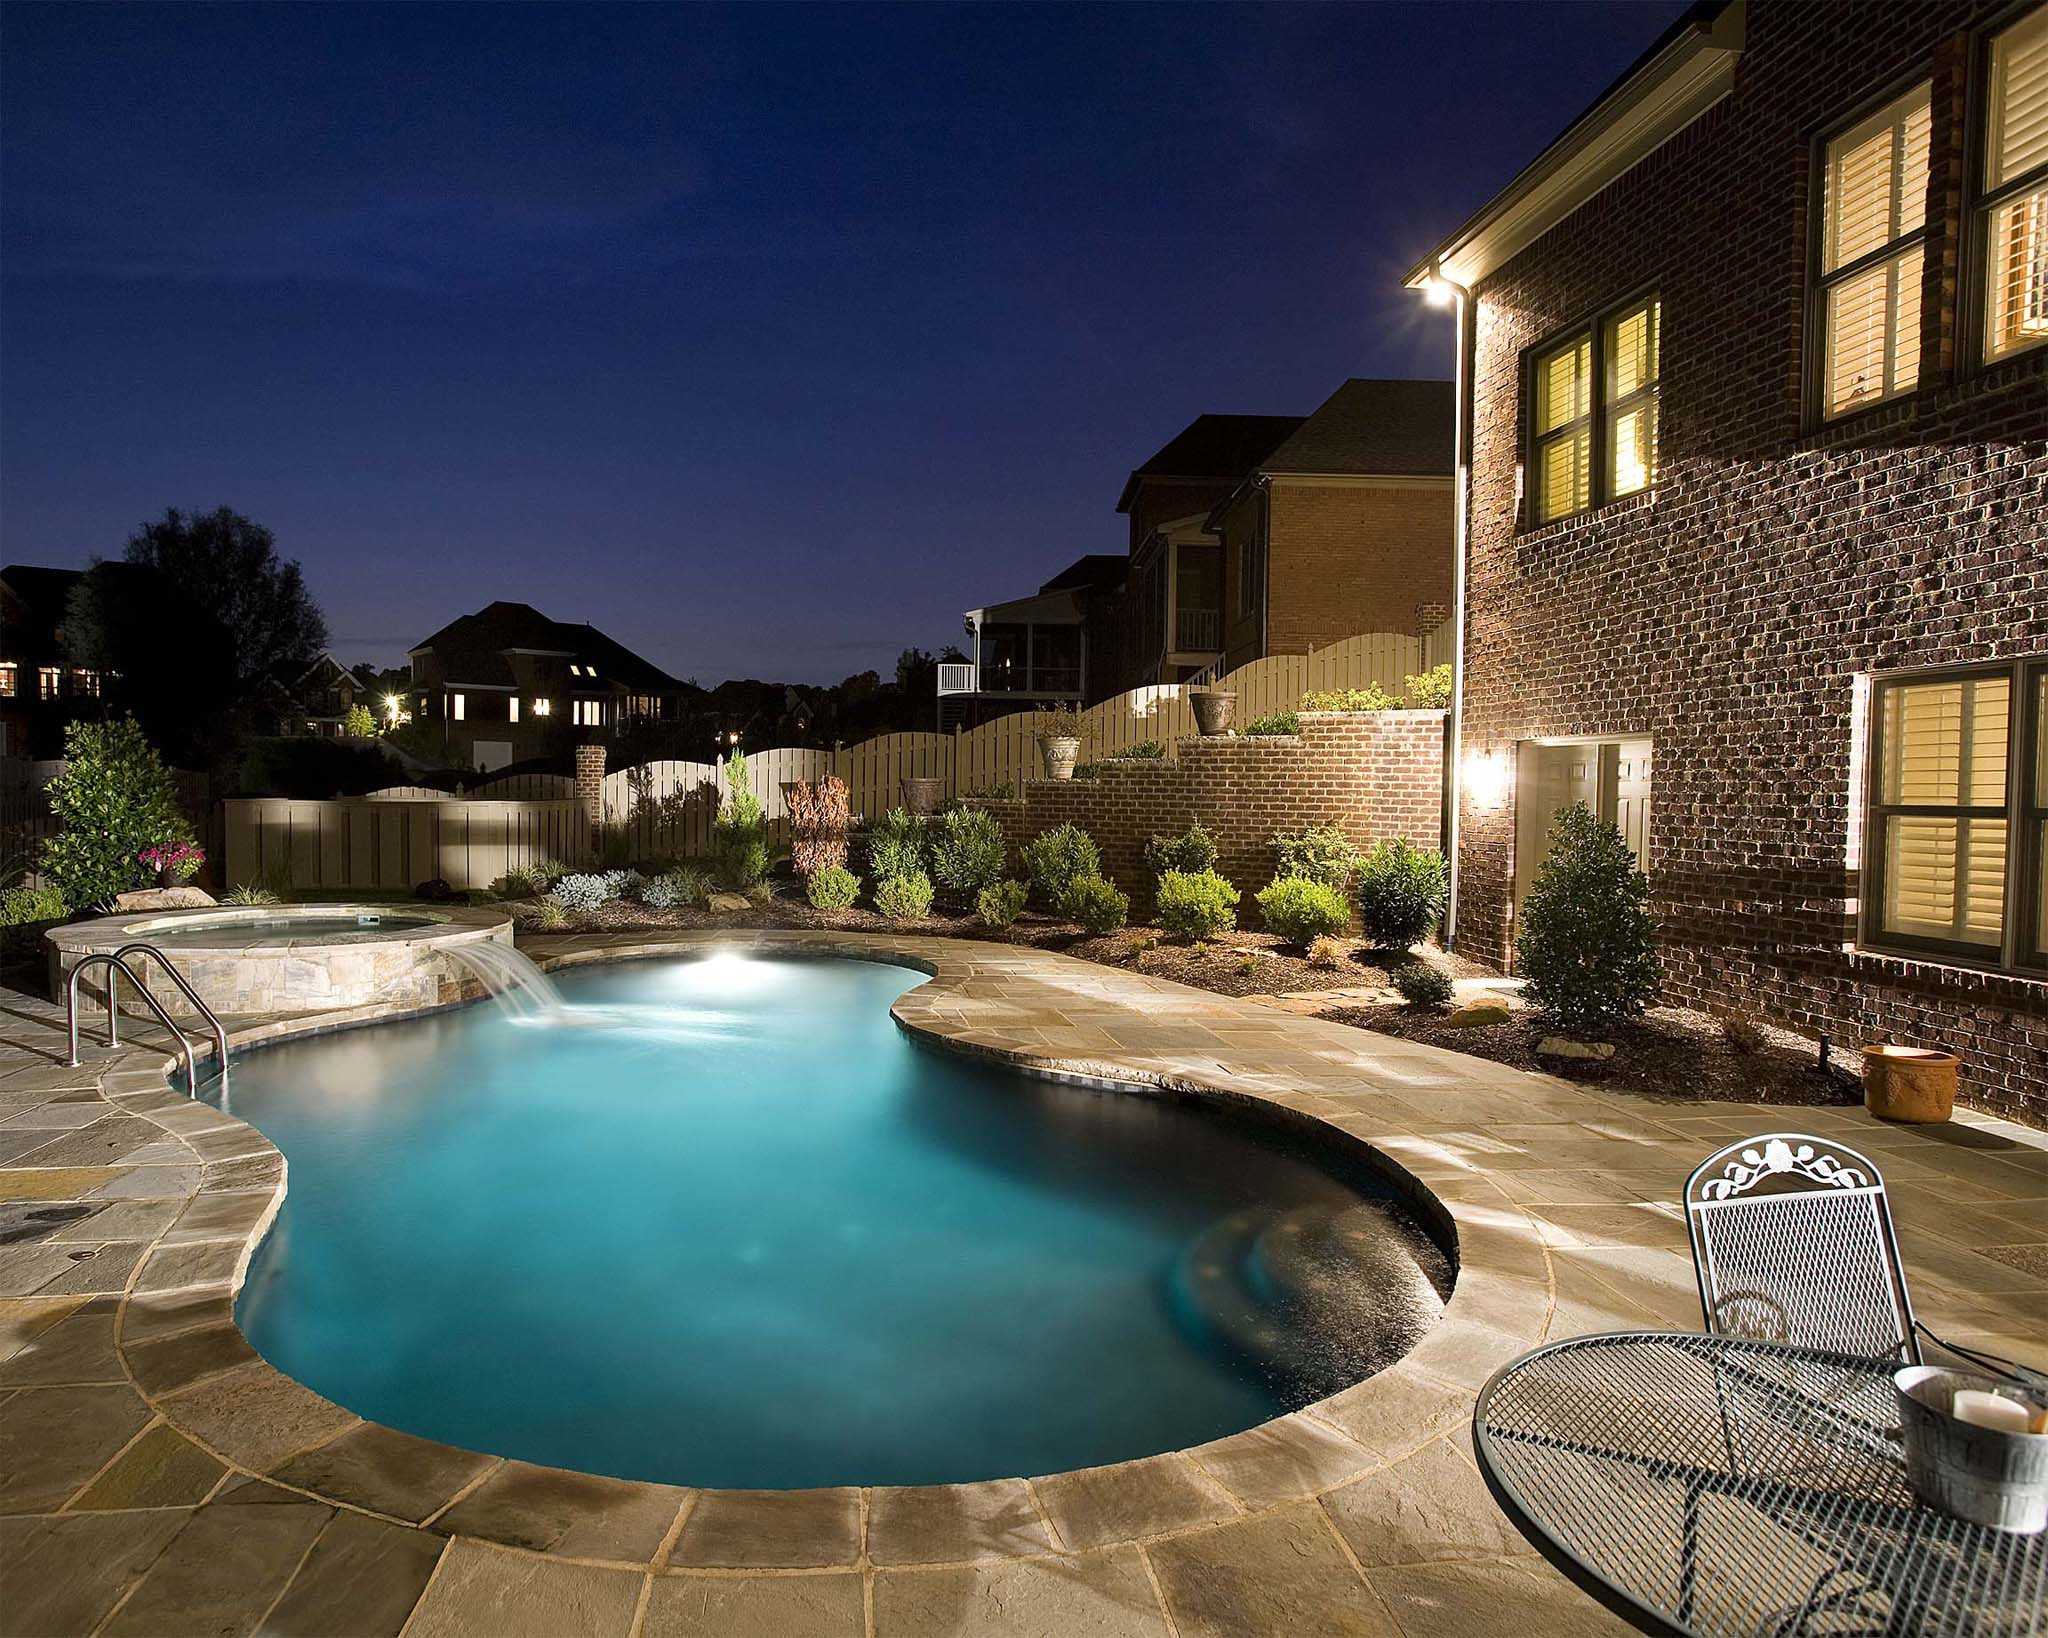 Off season pool construction advantages tipton pools for Pool design knoxville tn